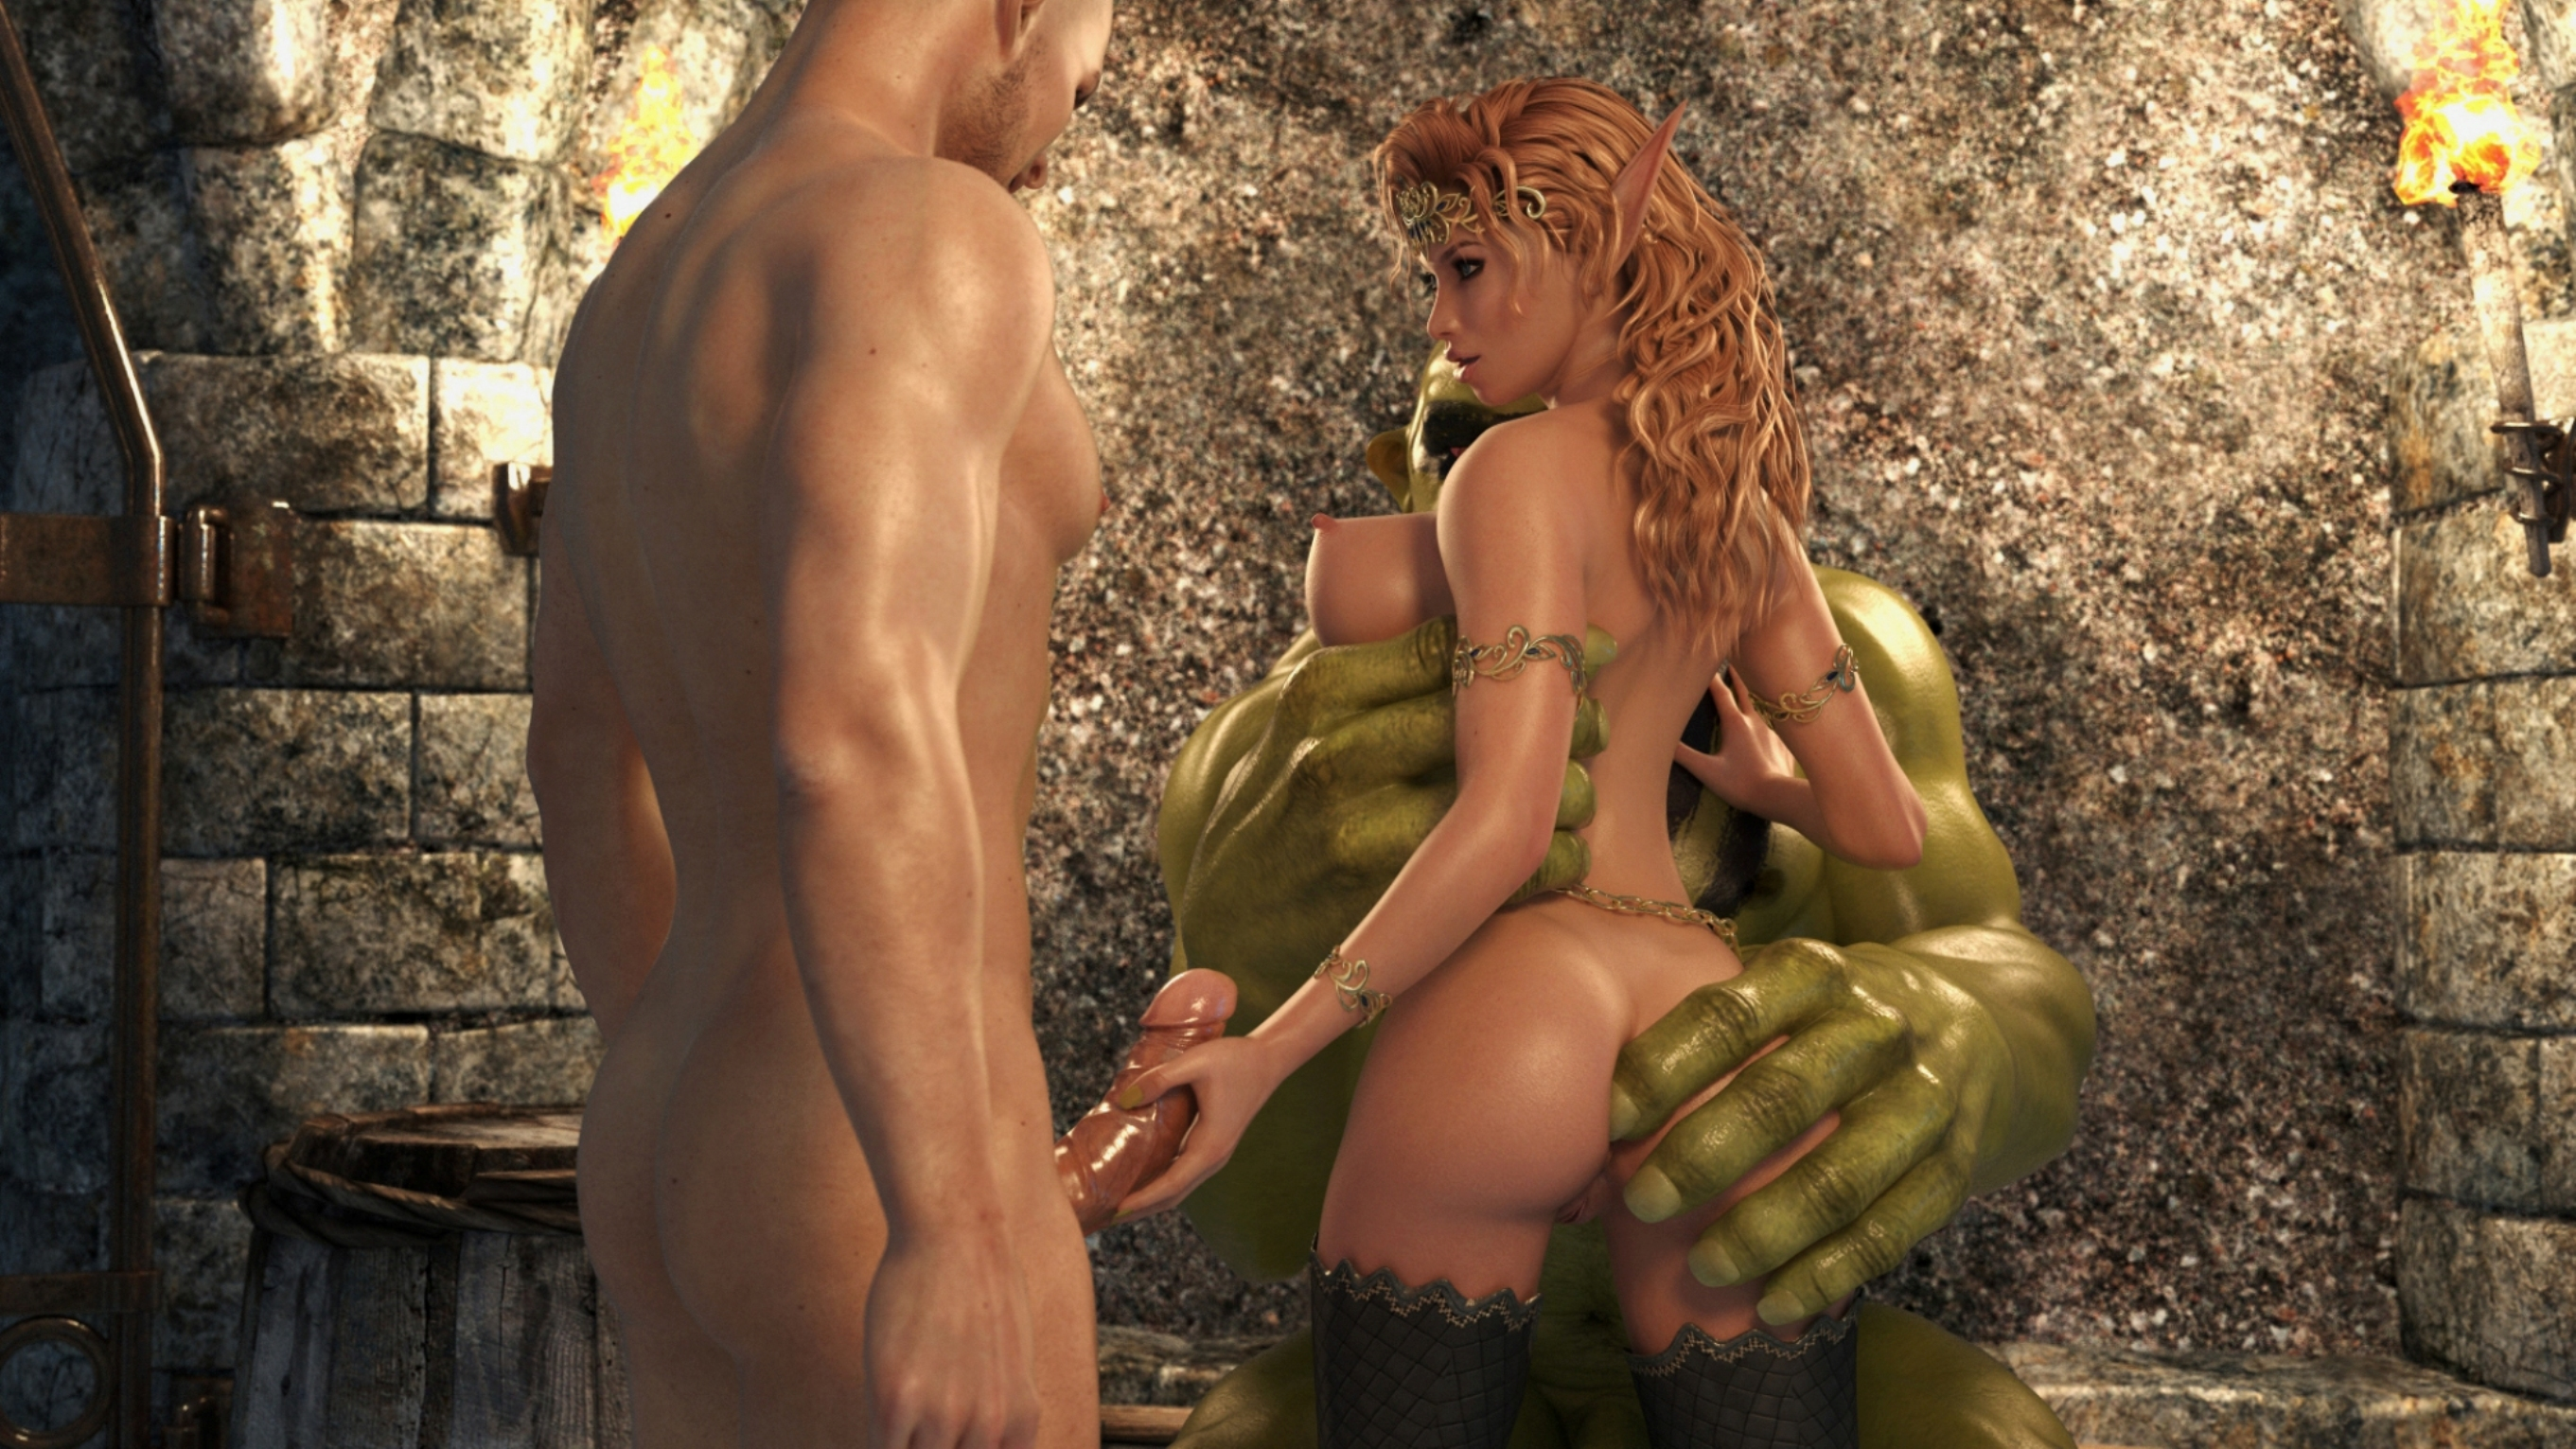 3d hd elves-porn videos hentai scenes